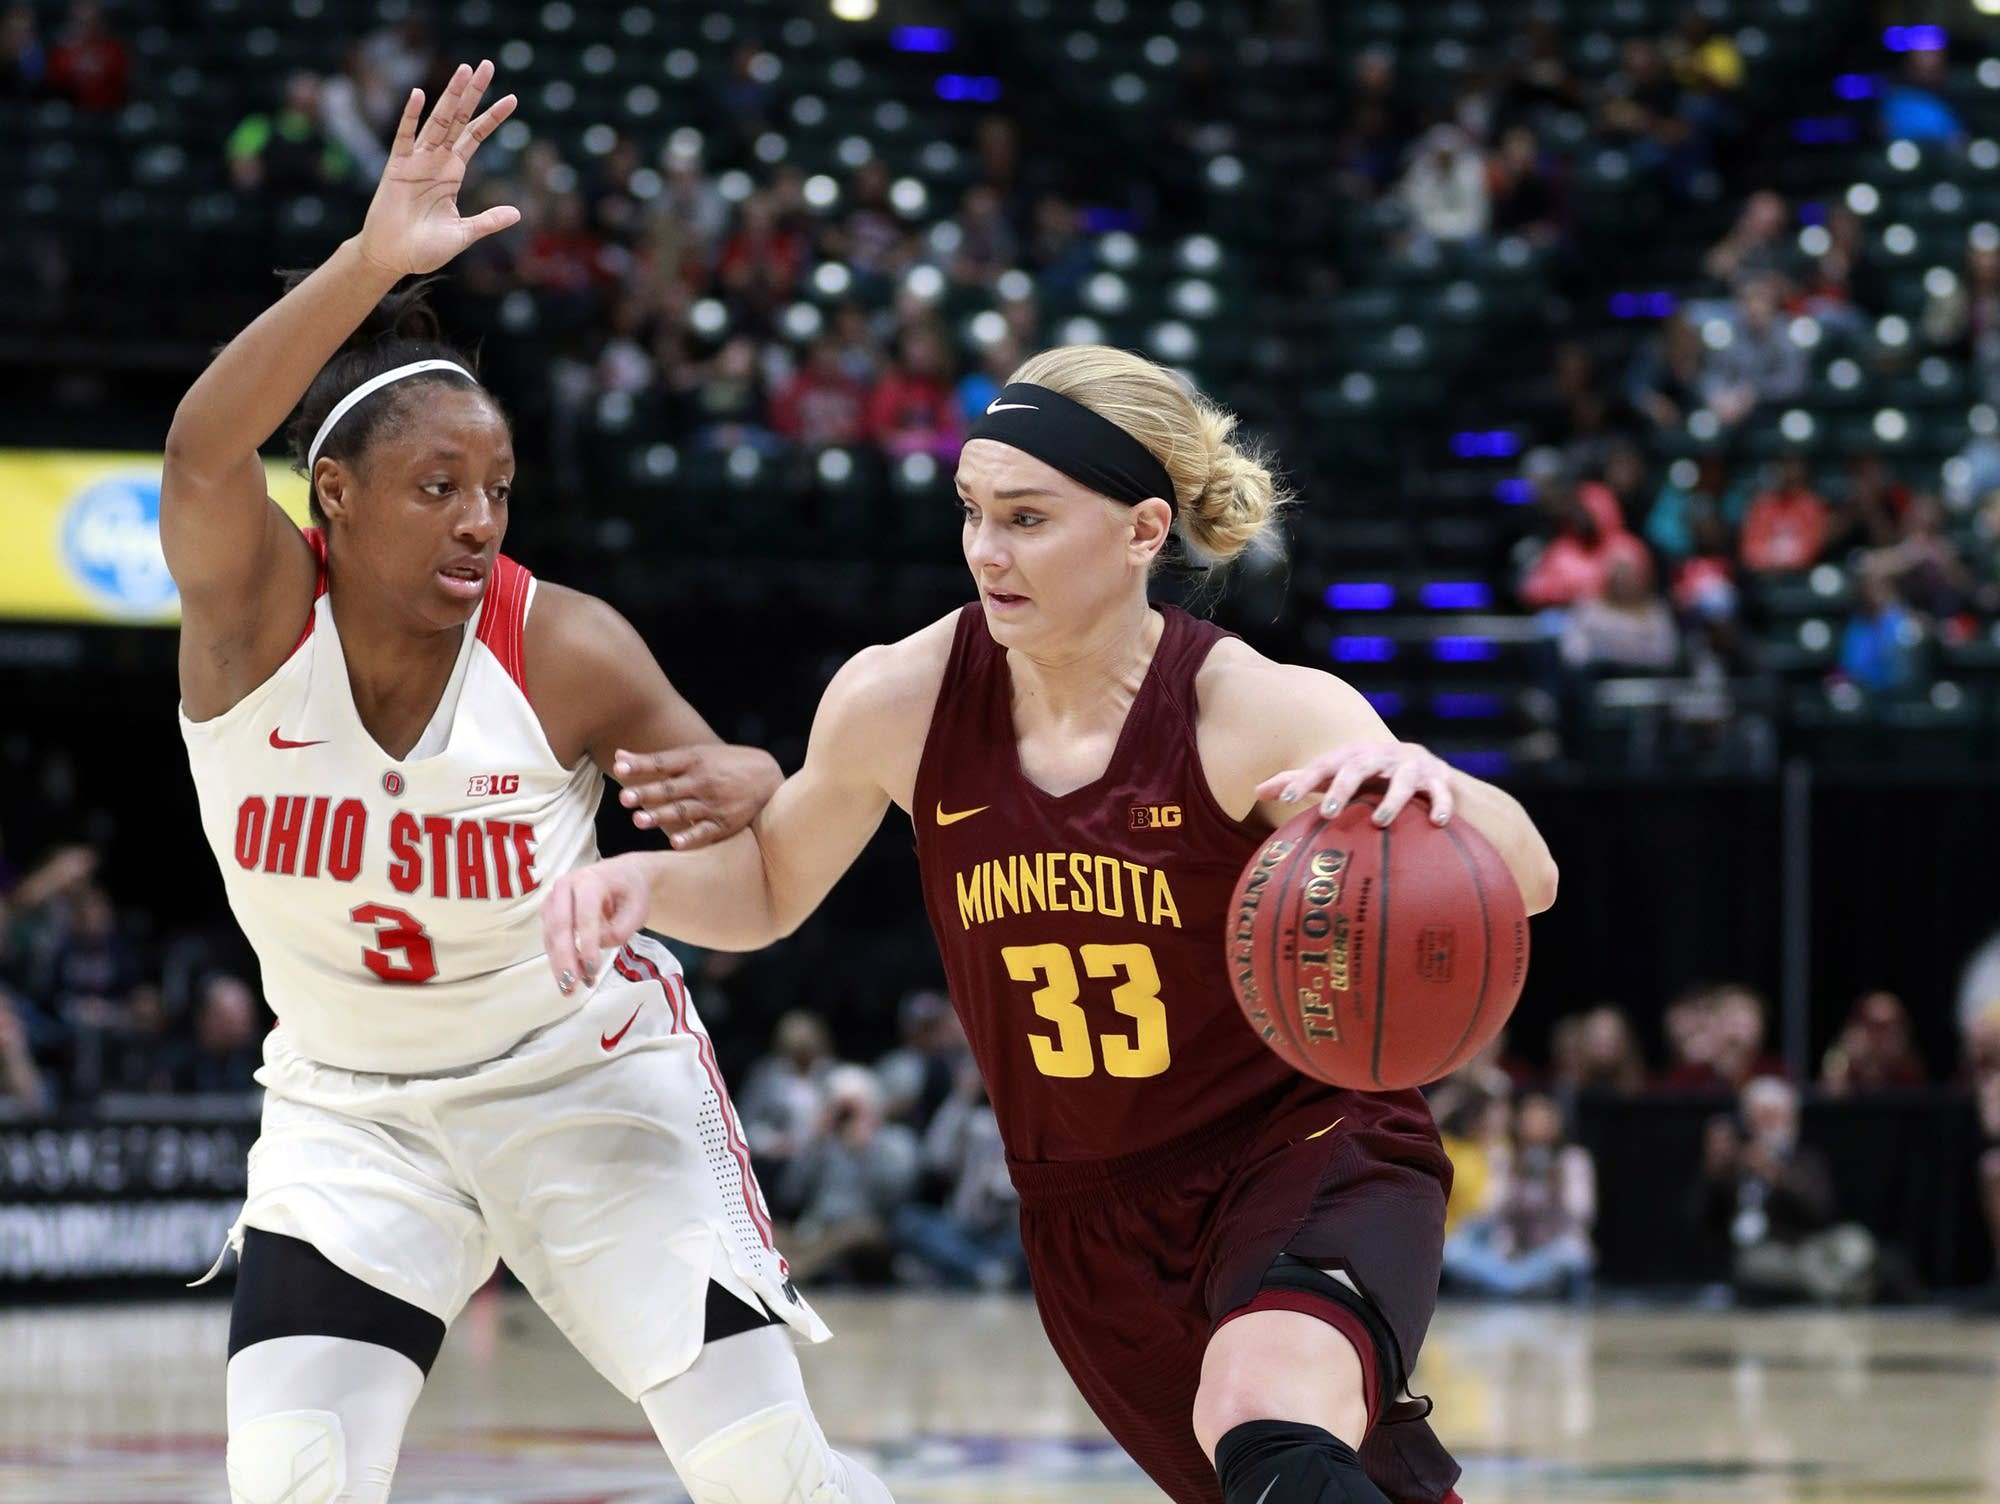 Bell, Pitts lead Minnesota past Green Bay in tourney opener